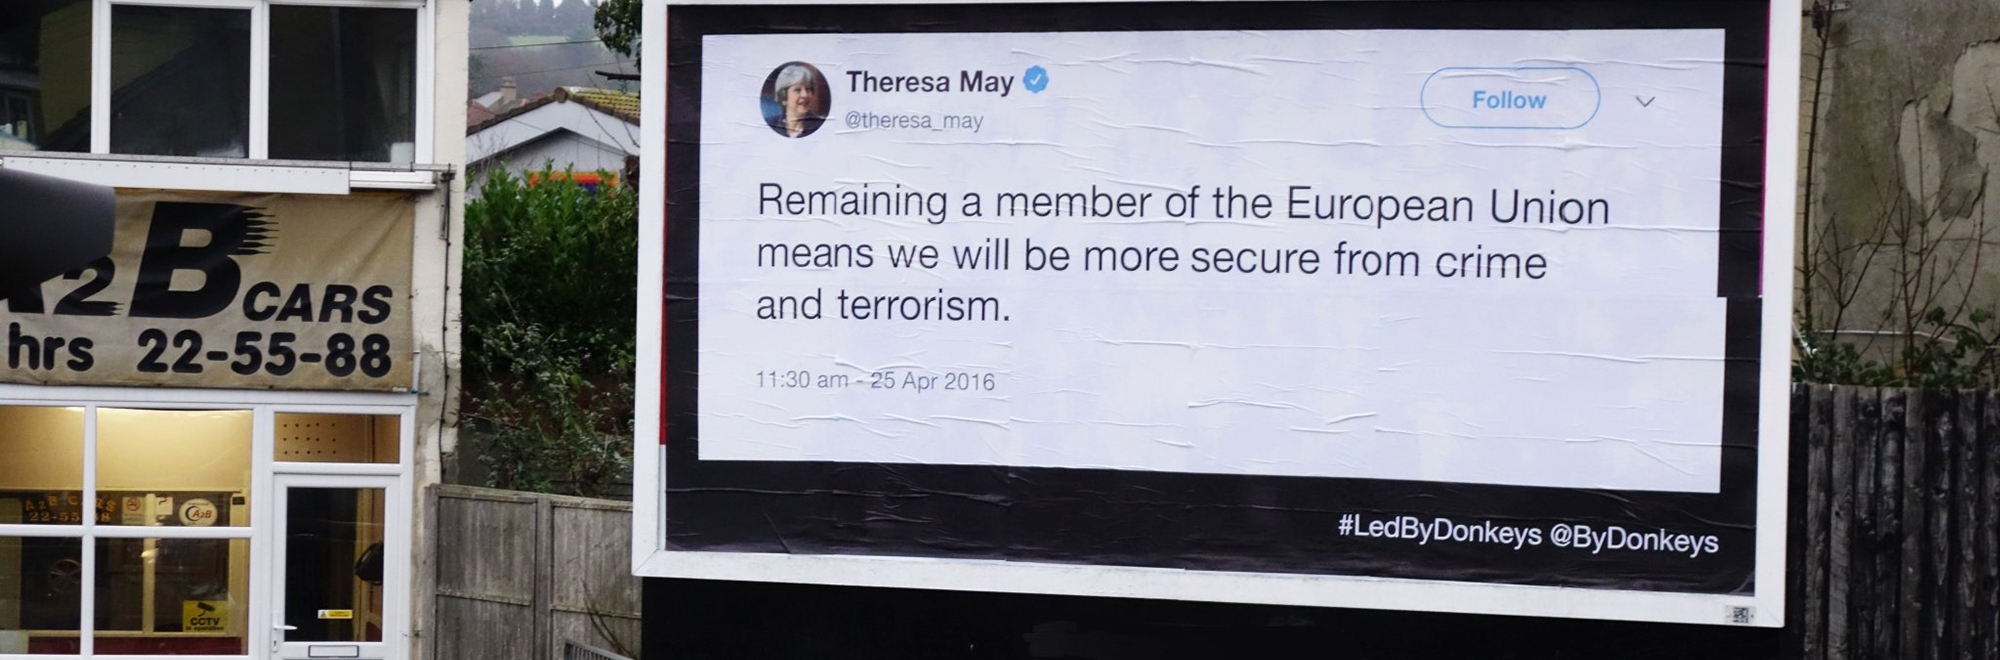 How campaign group Led by Donkeys displayed politicians' crass tweets about Brexit